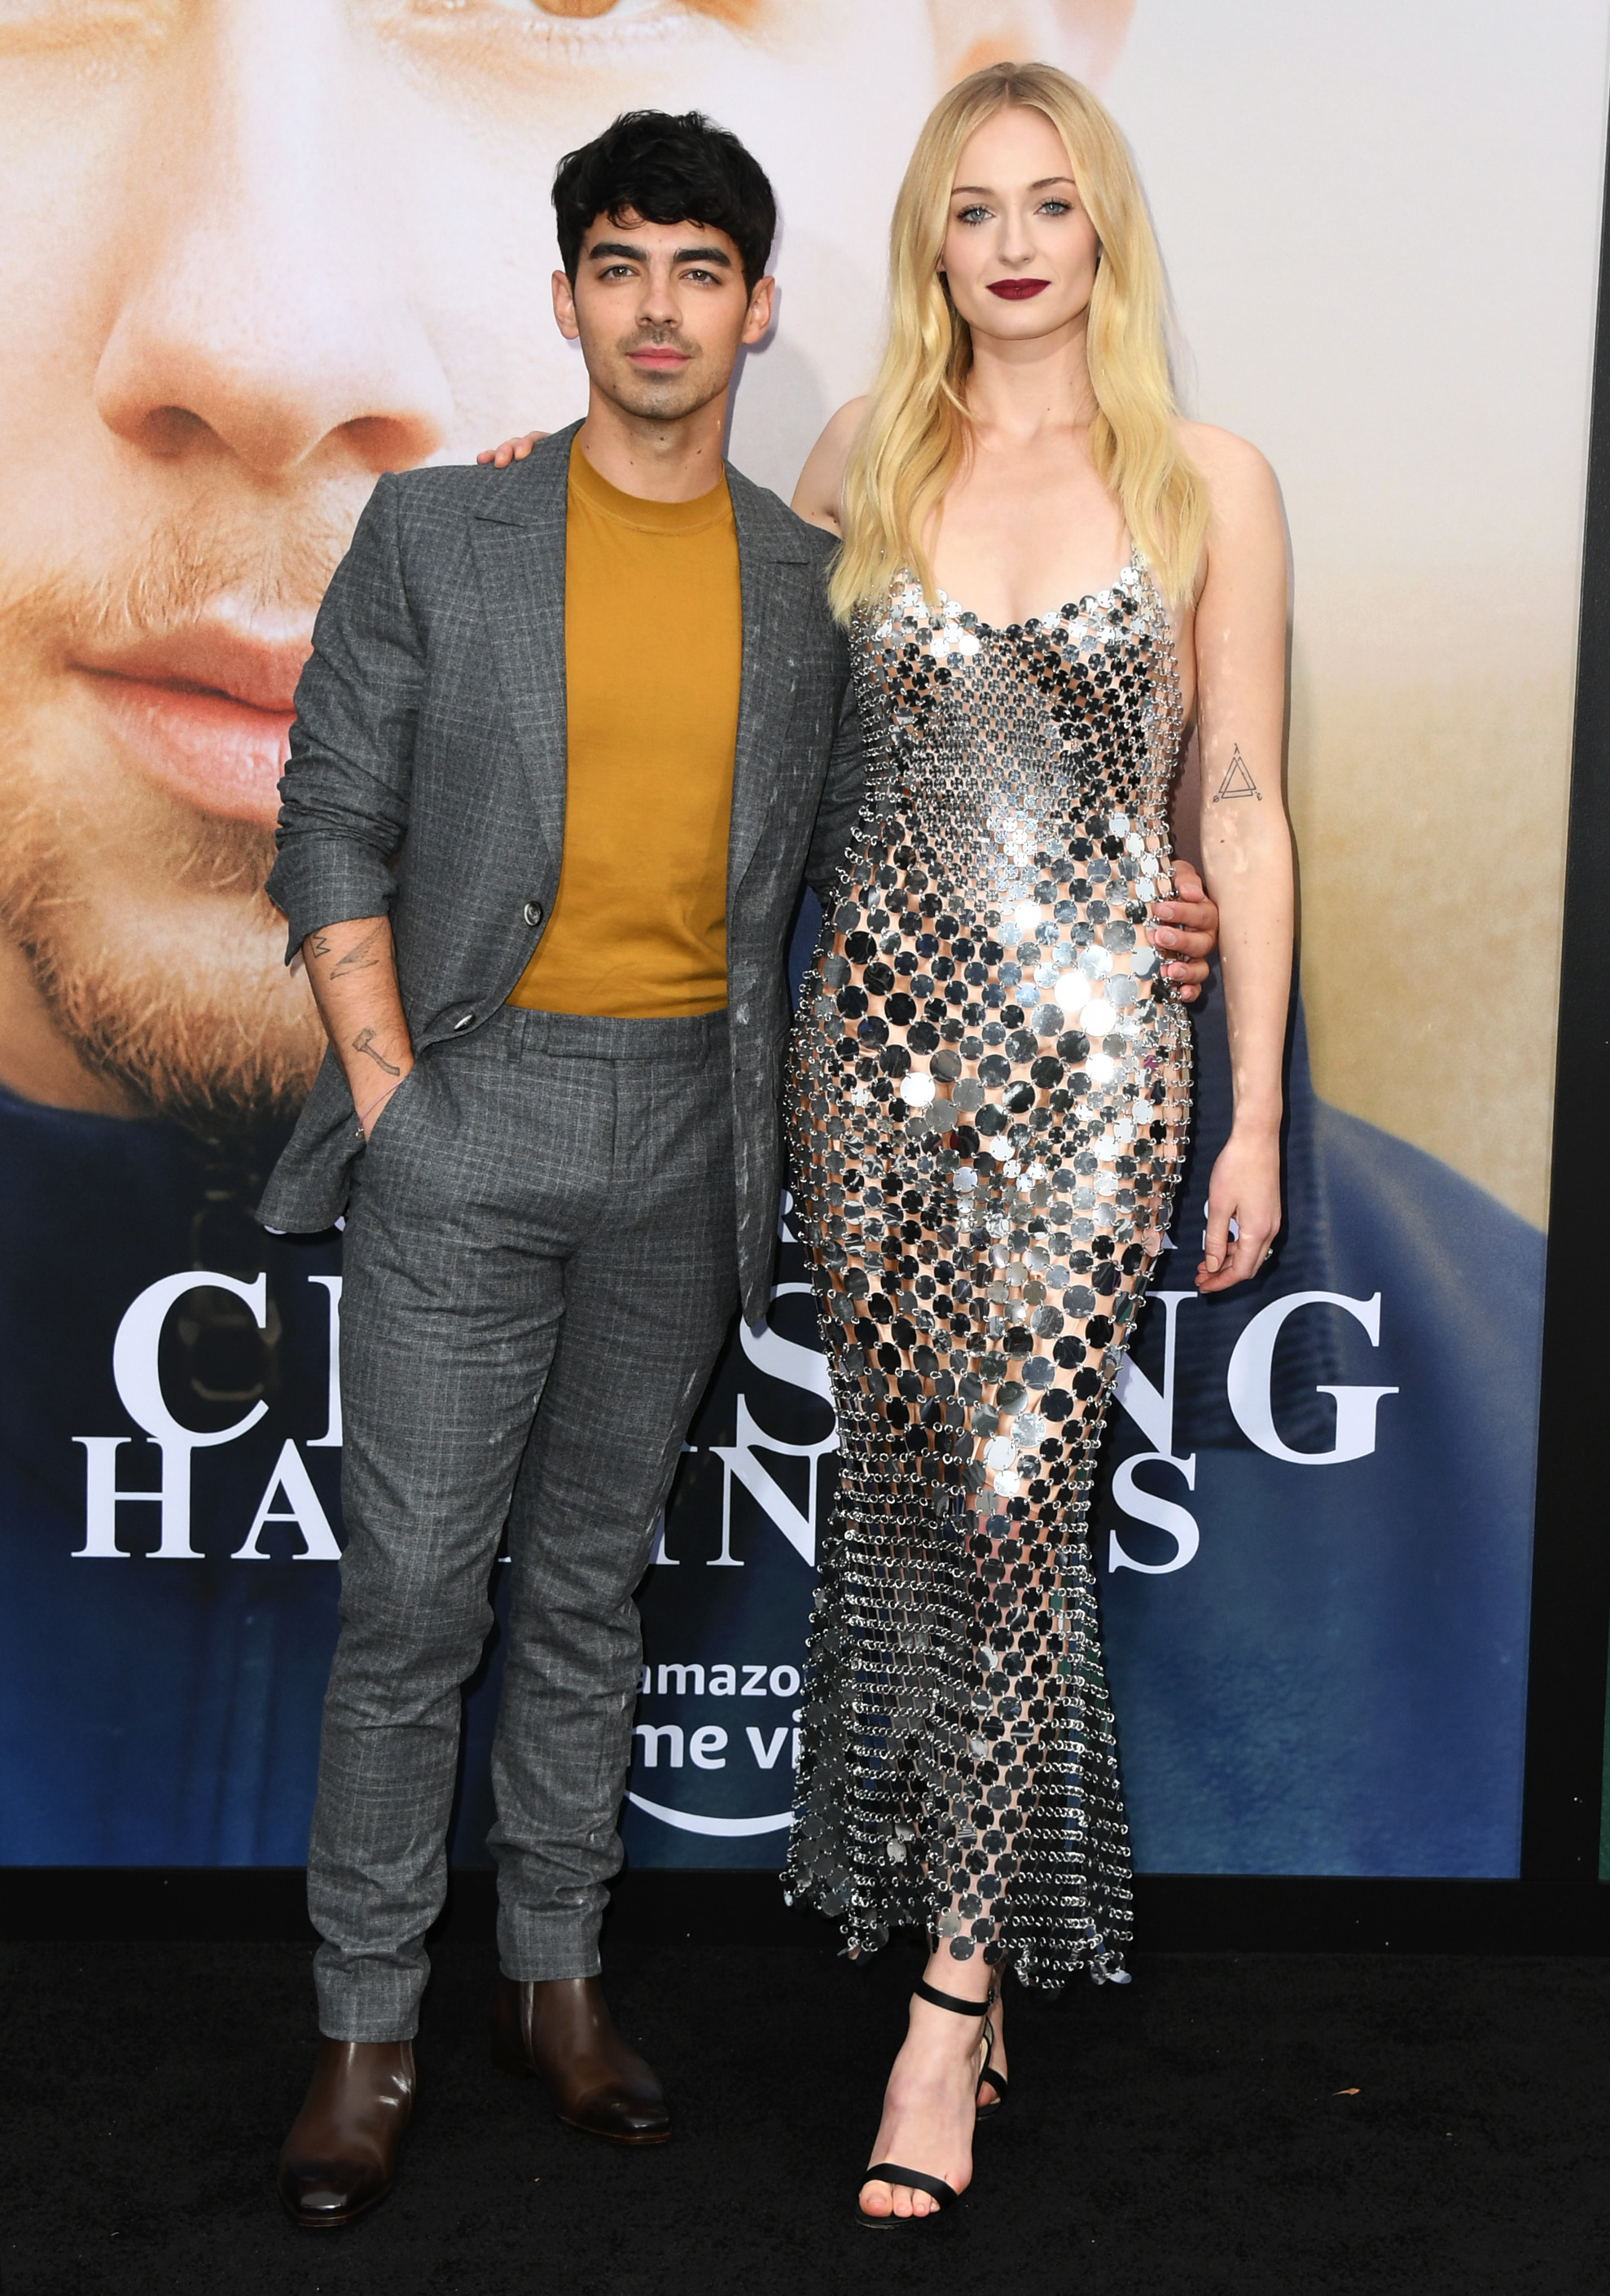 The Jonas Brothers Brought Their Wives to the Premiere of Their Documentary